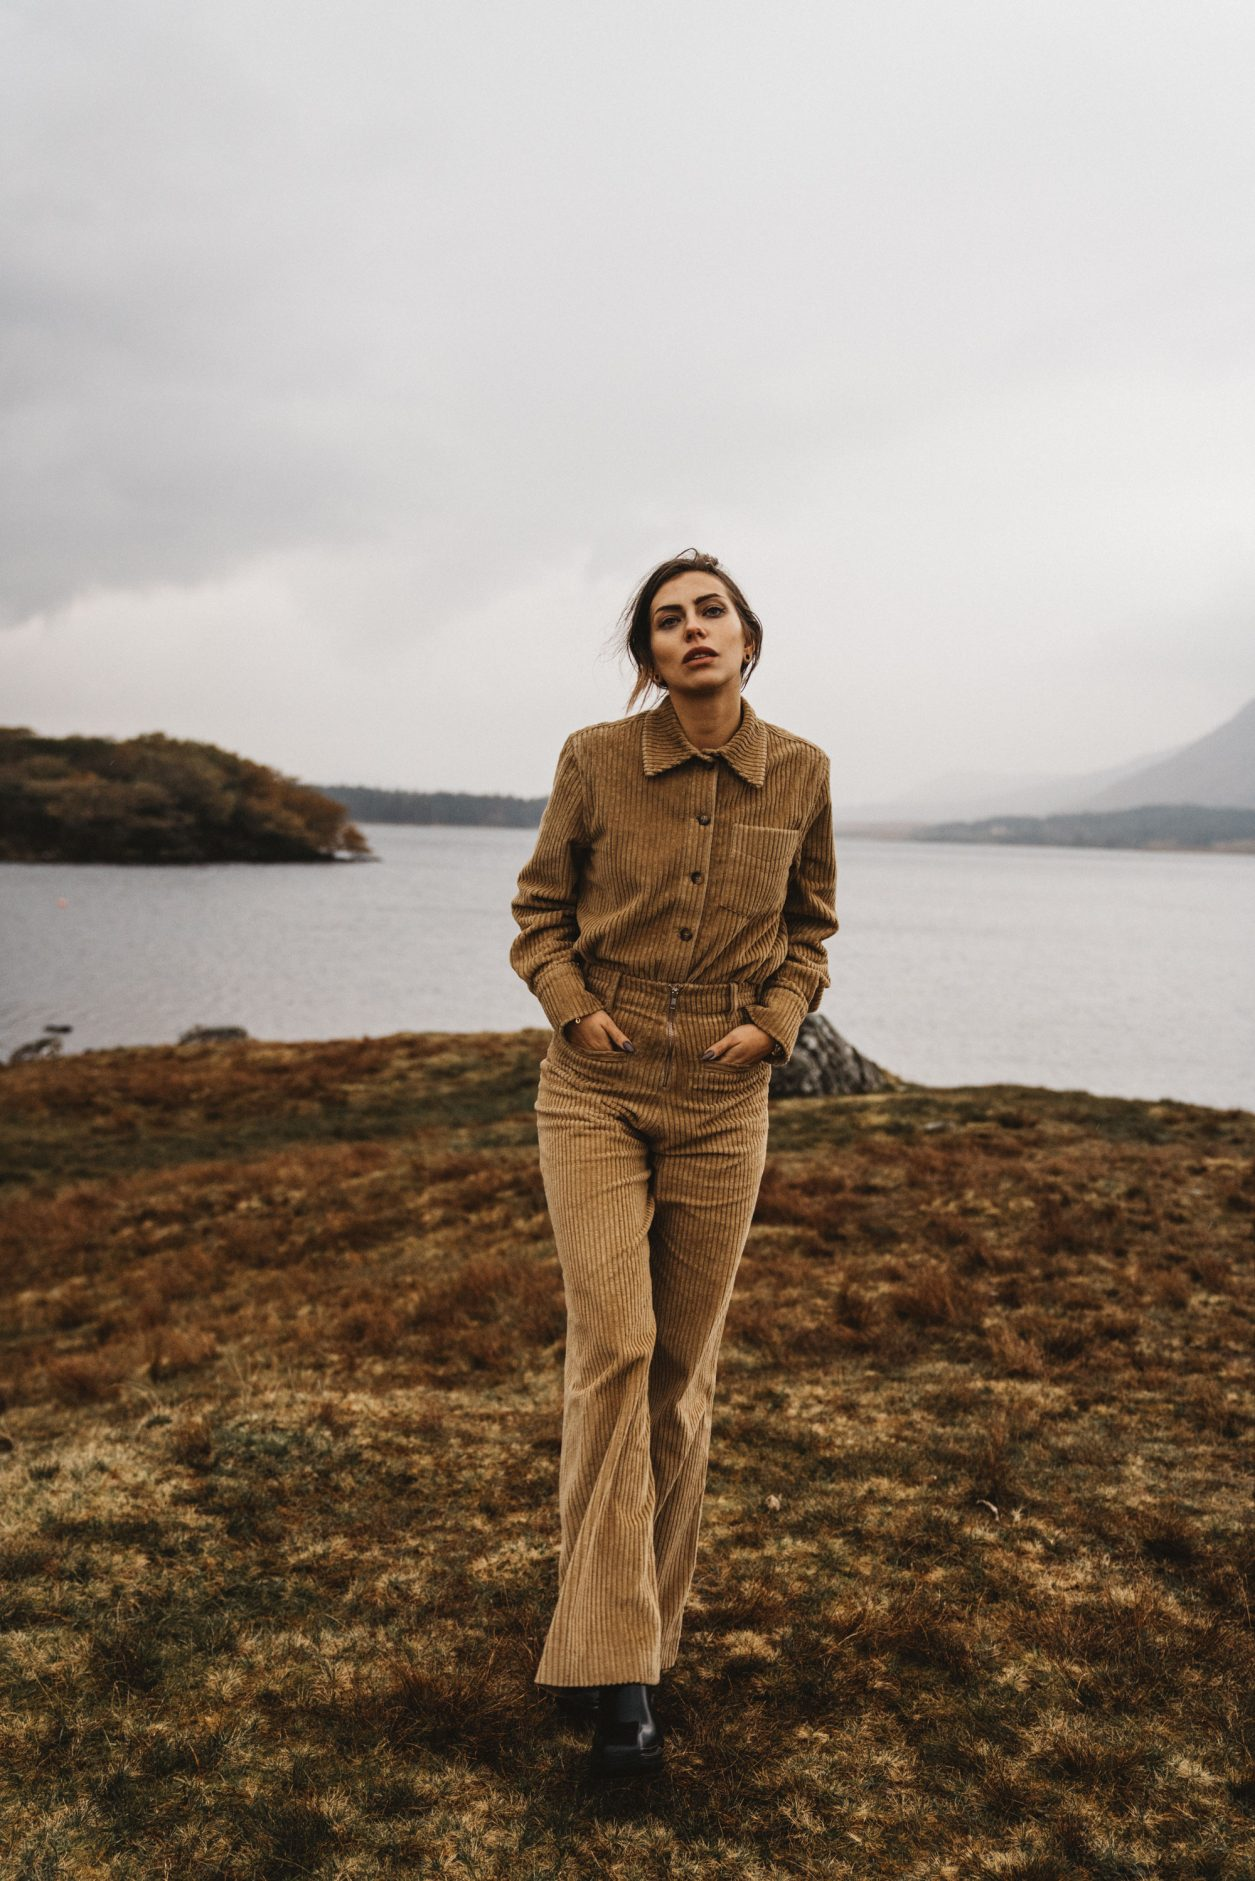 Fashion Editorial in Ireland | beige corduroy two piece from Gestuz | style: moody, dark, edgy, comfy, nature, wild, emotional, portrait